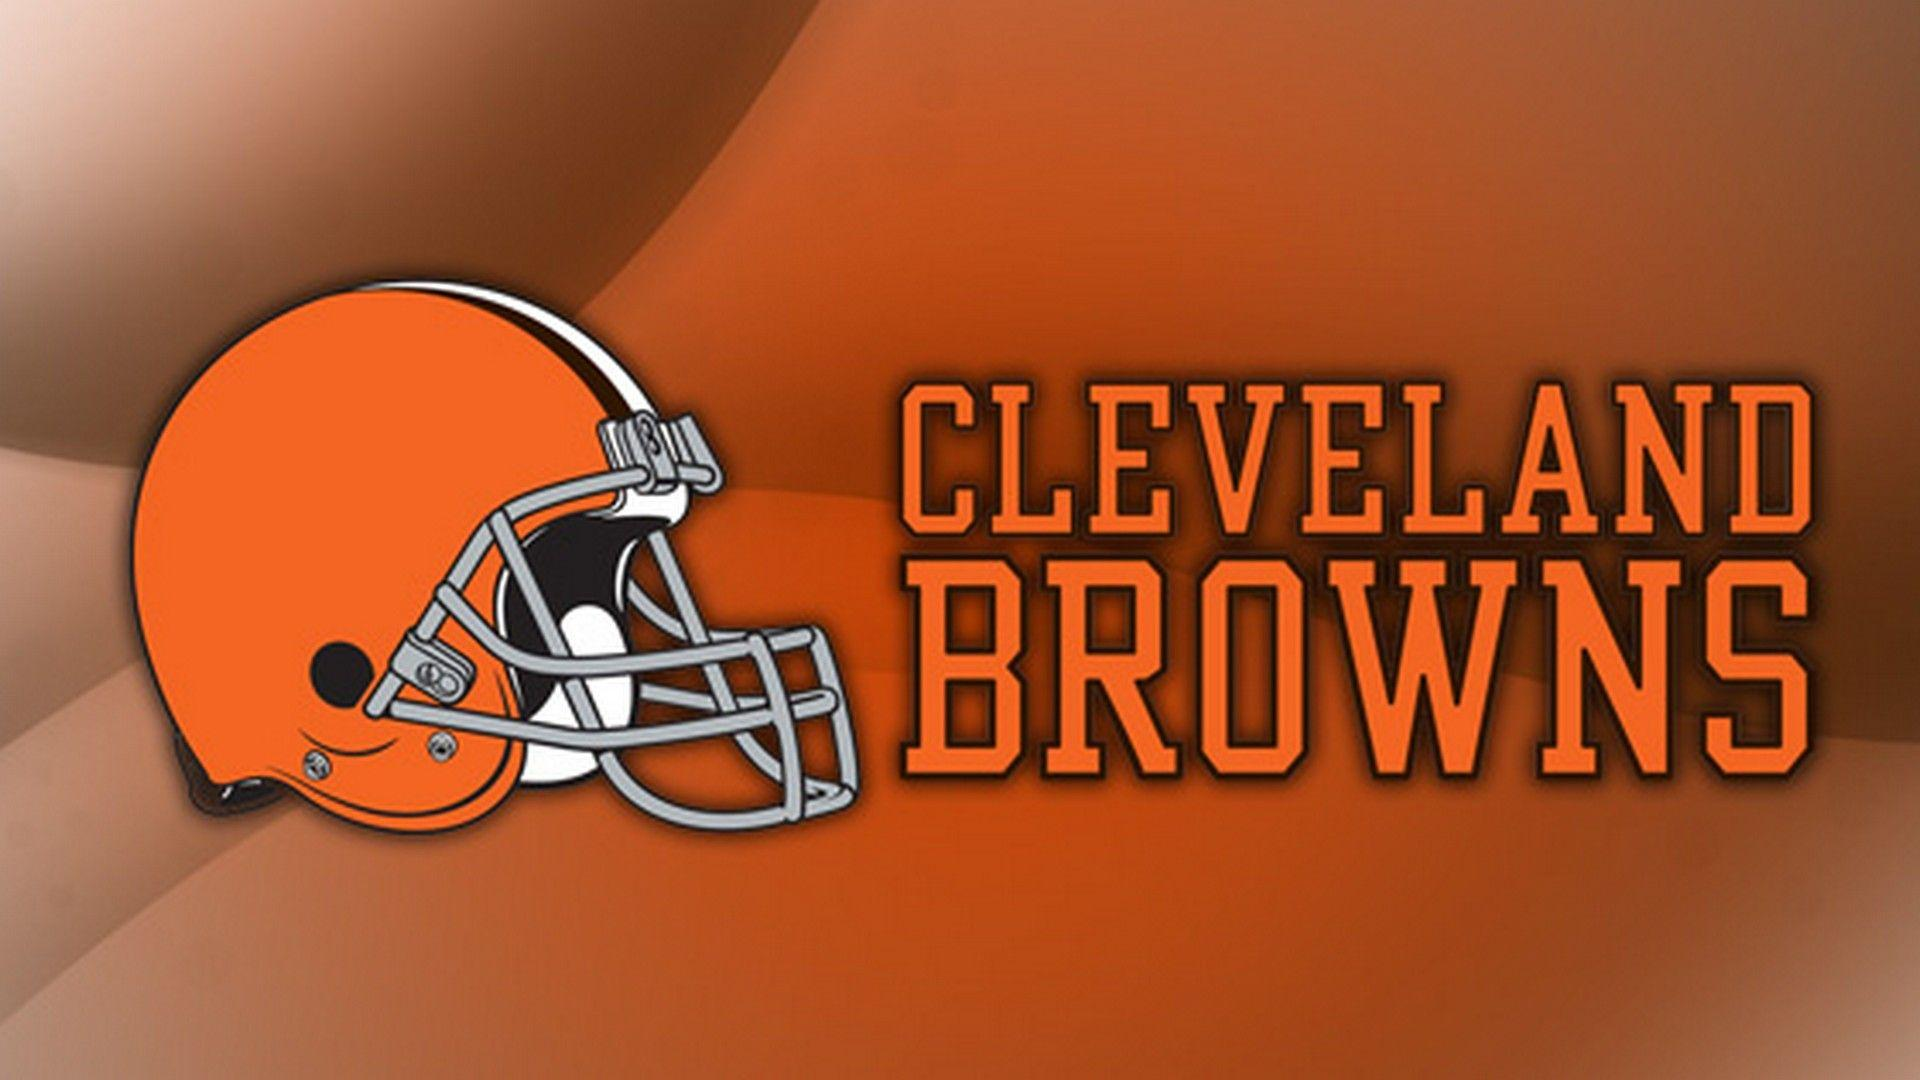 HD Backgrounds Cleveland Browns | Wallpapers | Pinterest | Wallpaper ...